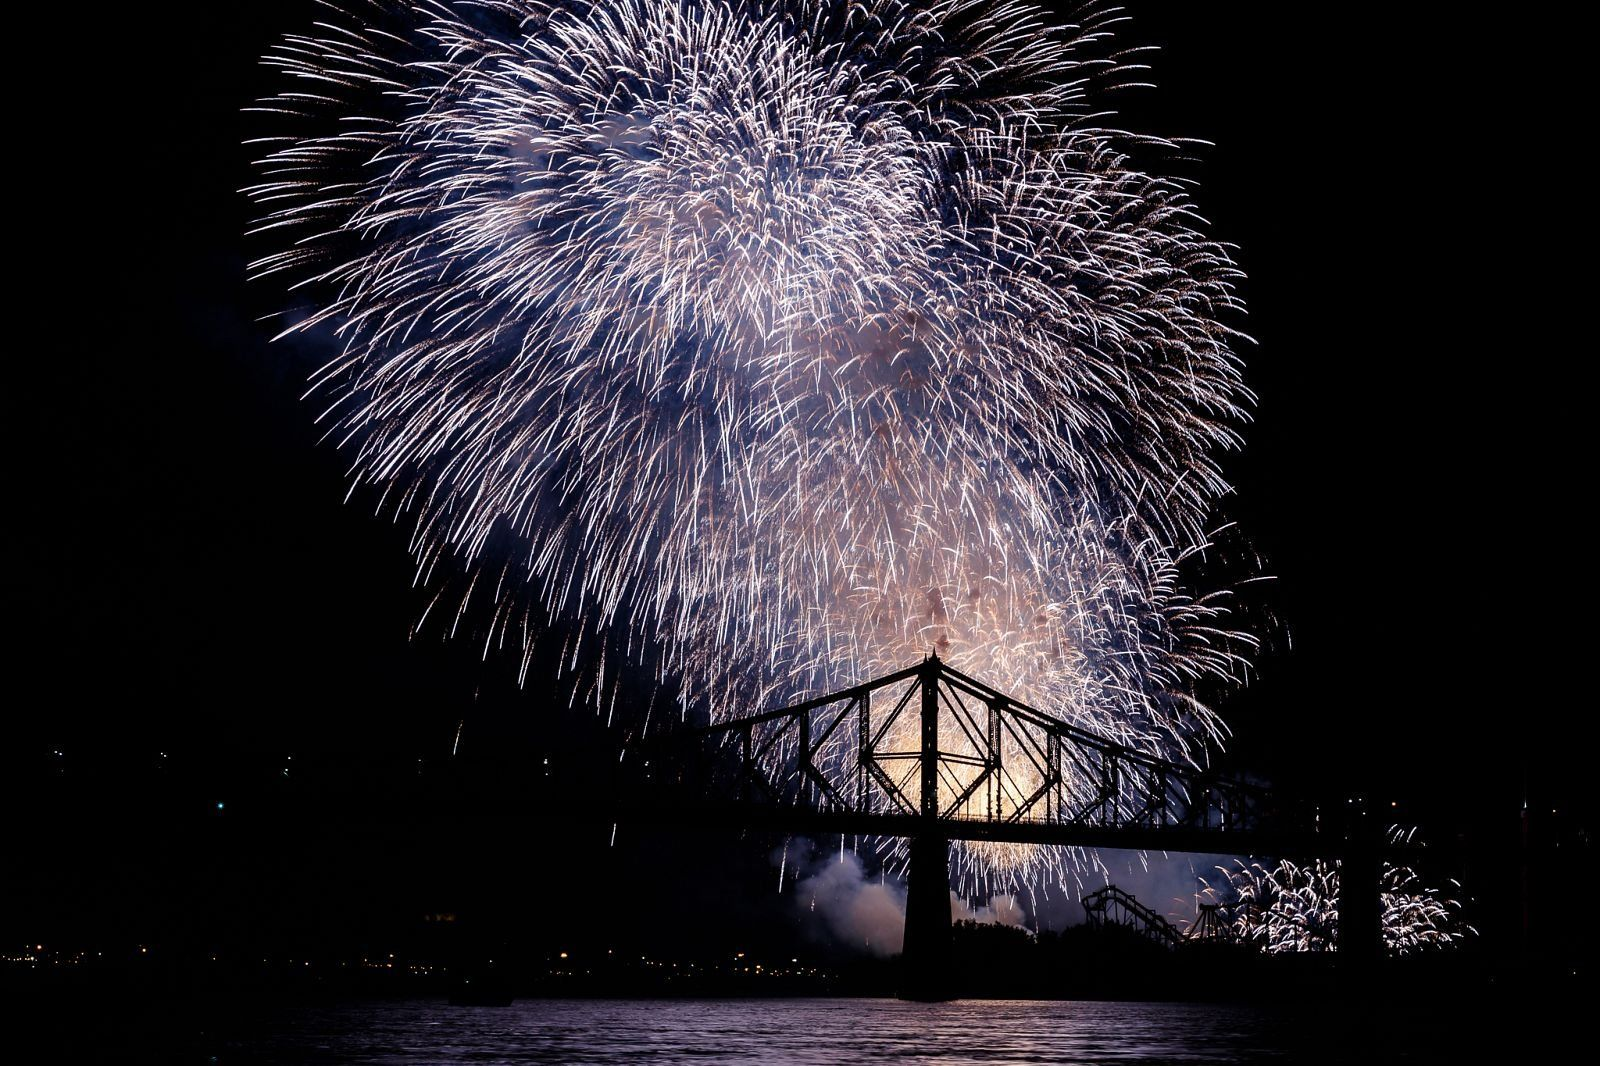 montreal_fireworks_competition_201727_1100.jpg